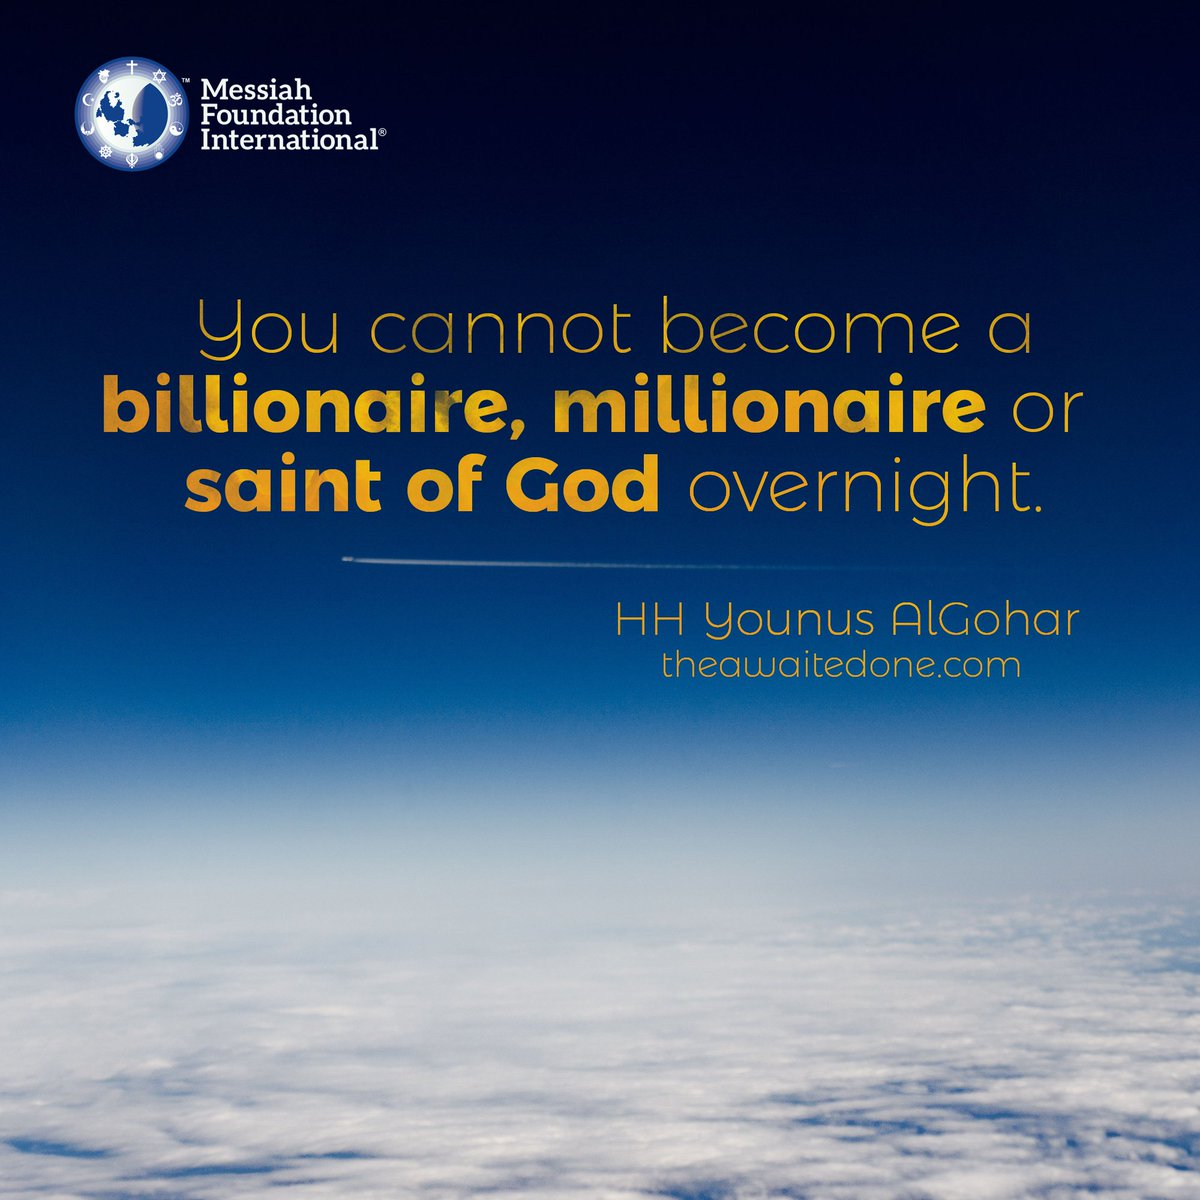 #QuoteoftheDay 'You cannot become a #billionaire, #millionaire or #saint of #God overnight.' - HH #YounusAlGohar<br>http://pic.twitter.com/3GkfW6LFf2